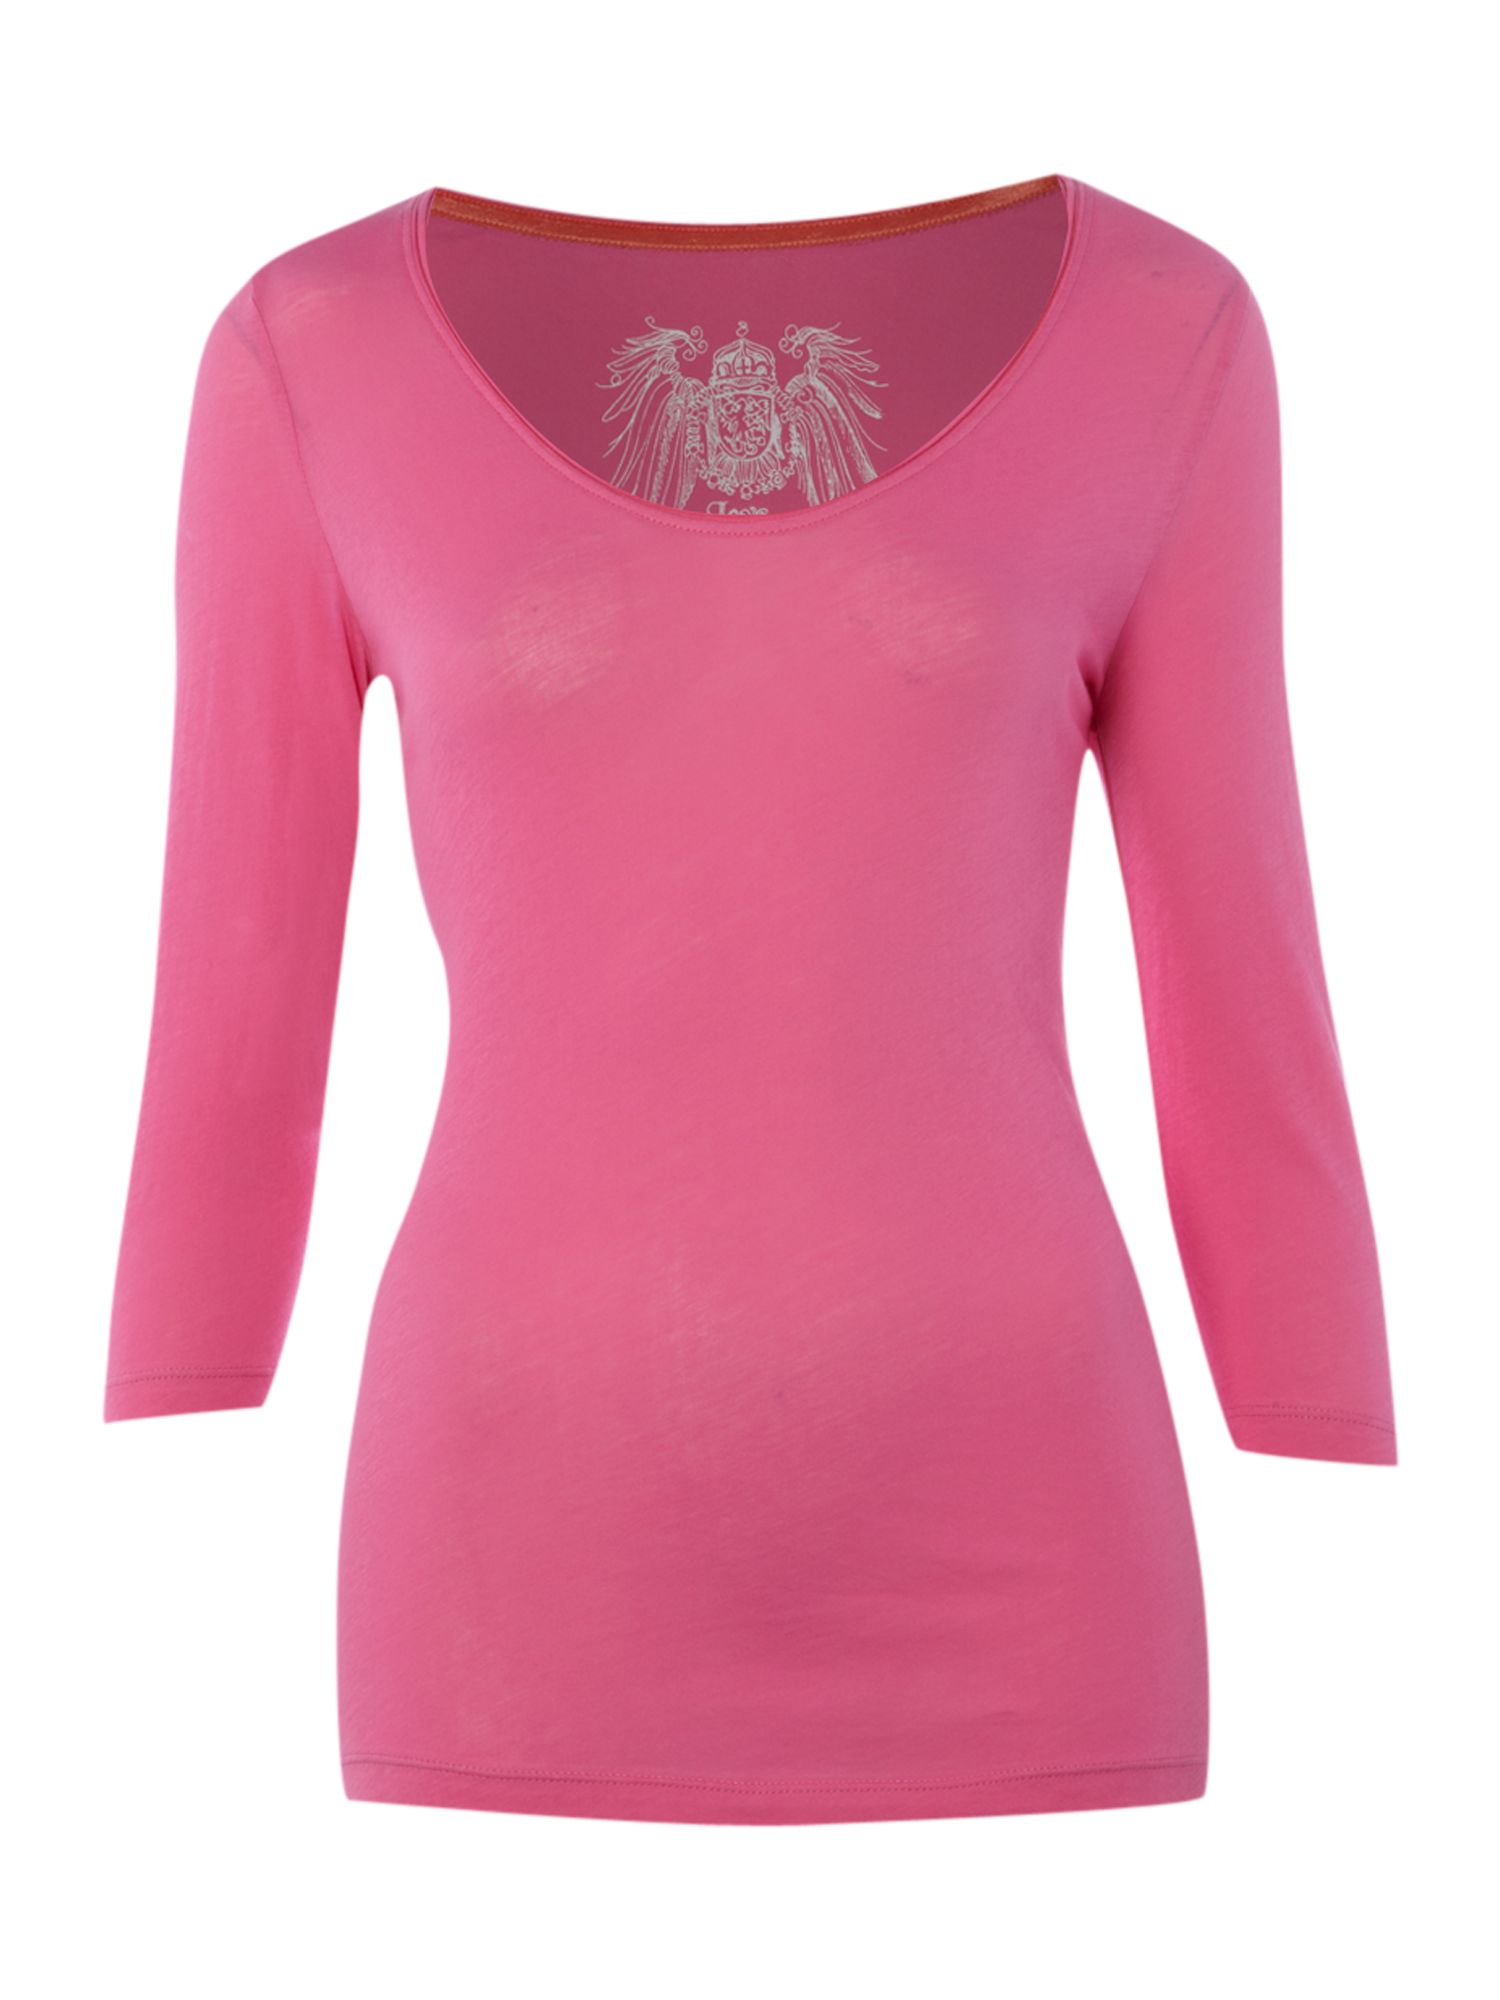 Oui Womens Oui 3/4 sleeve pink t-shirt, Pink product image